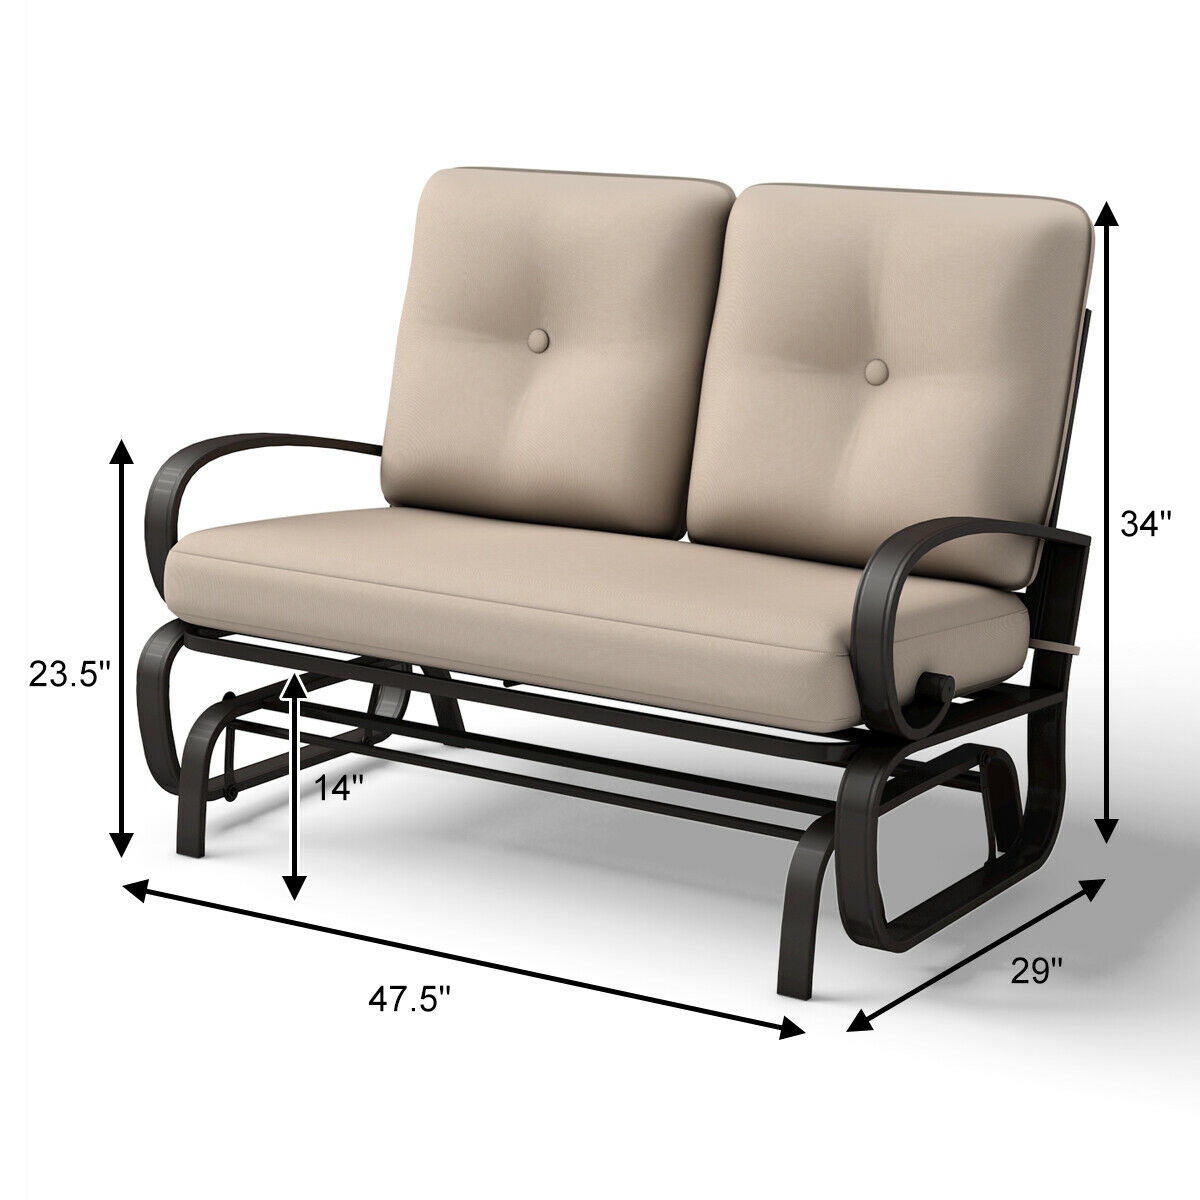 Costway Glider Outdoor Patio Rocking Bench Loveseat Pertaining To Rocking Love Seats Glider Swing Benches With Sturdy Frame (View 5 of 25)